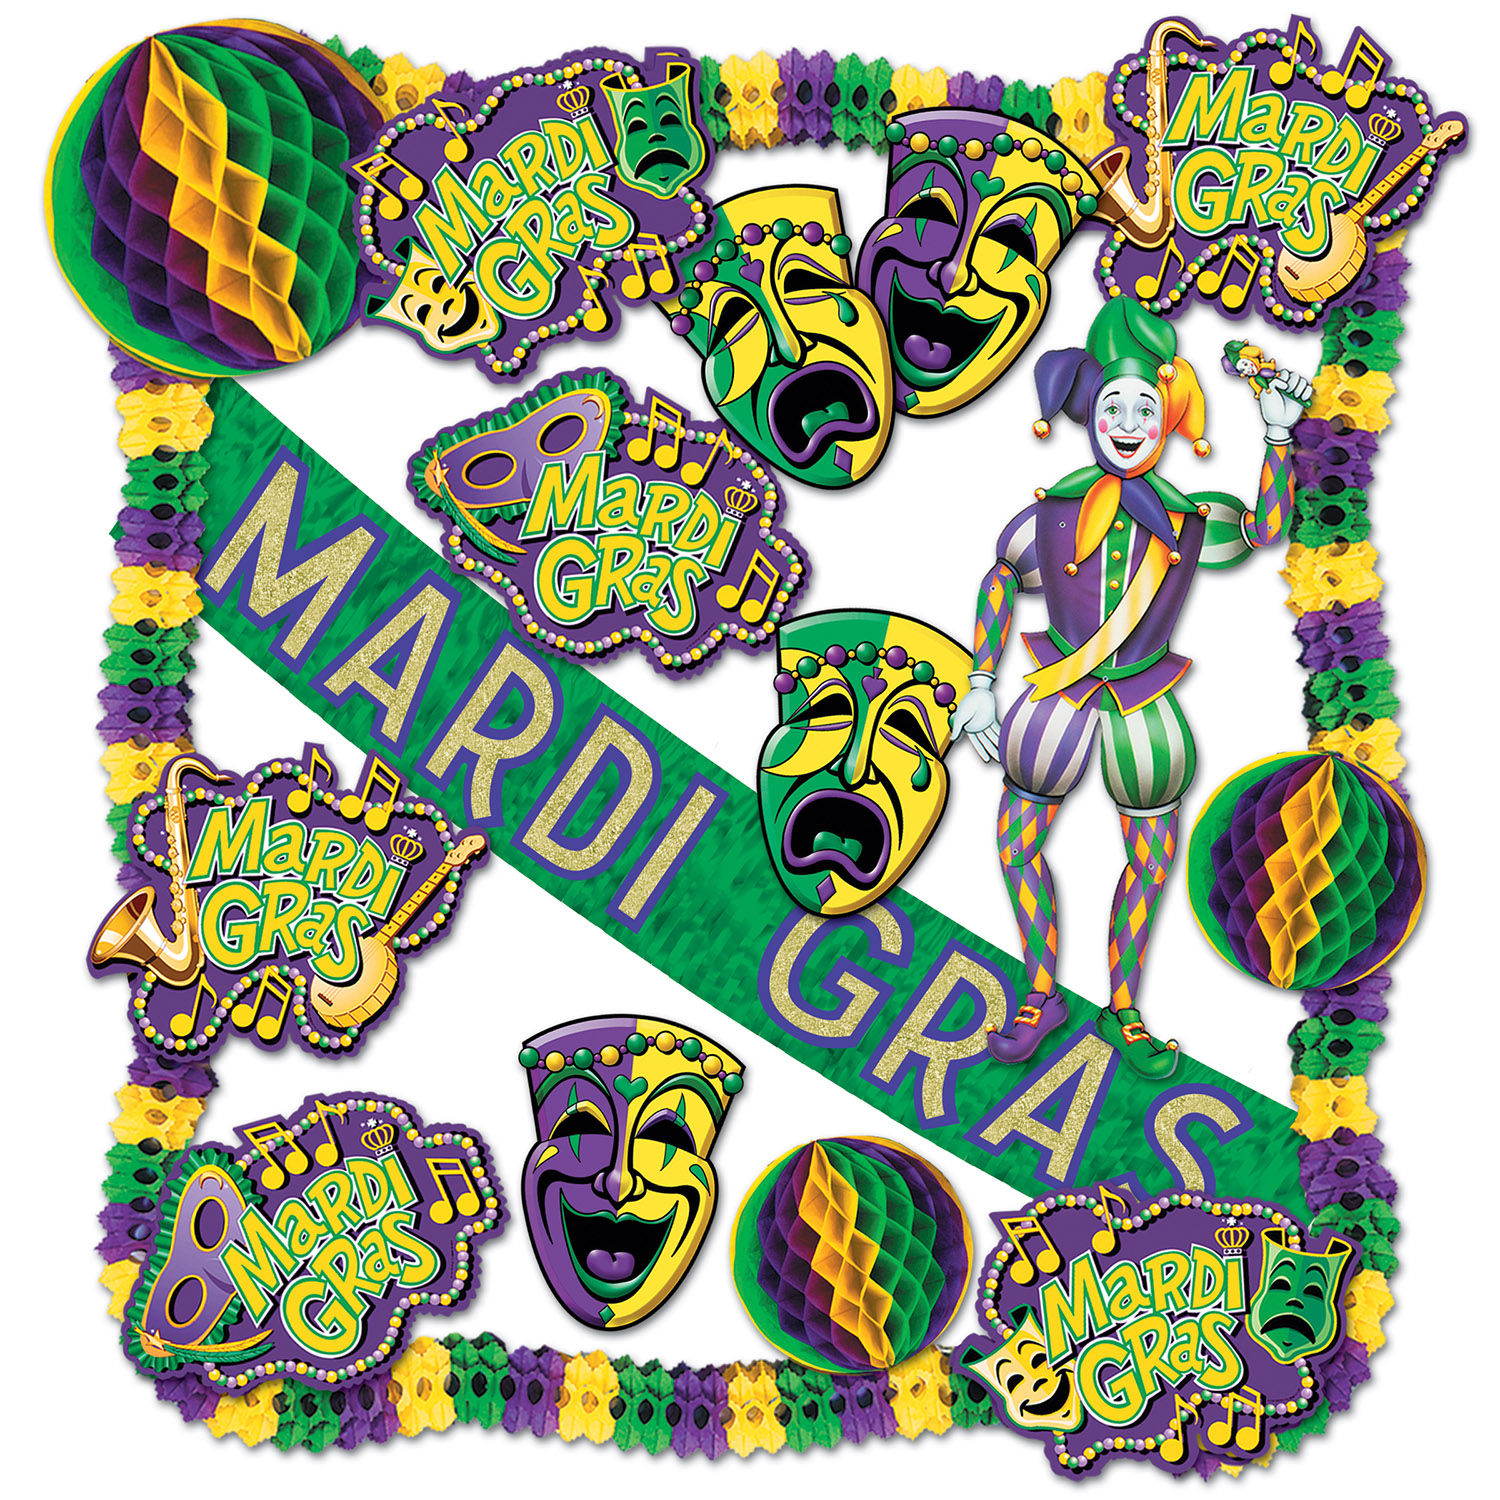 a green, gold, and purple decorating kit for Mardi Gras